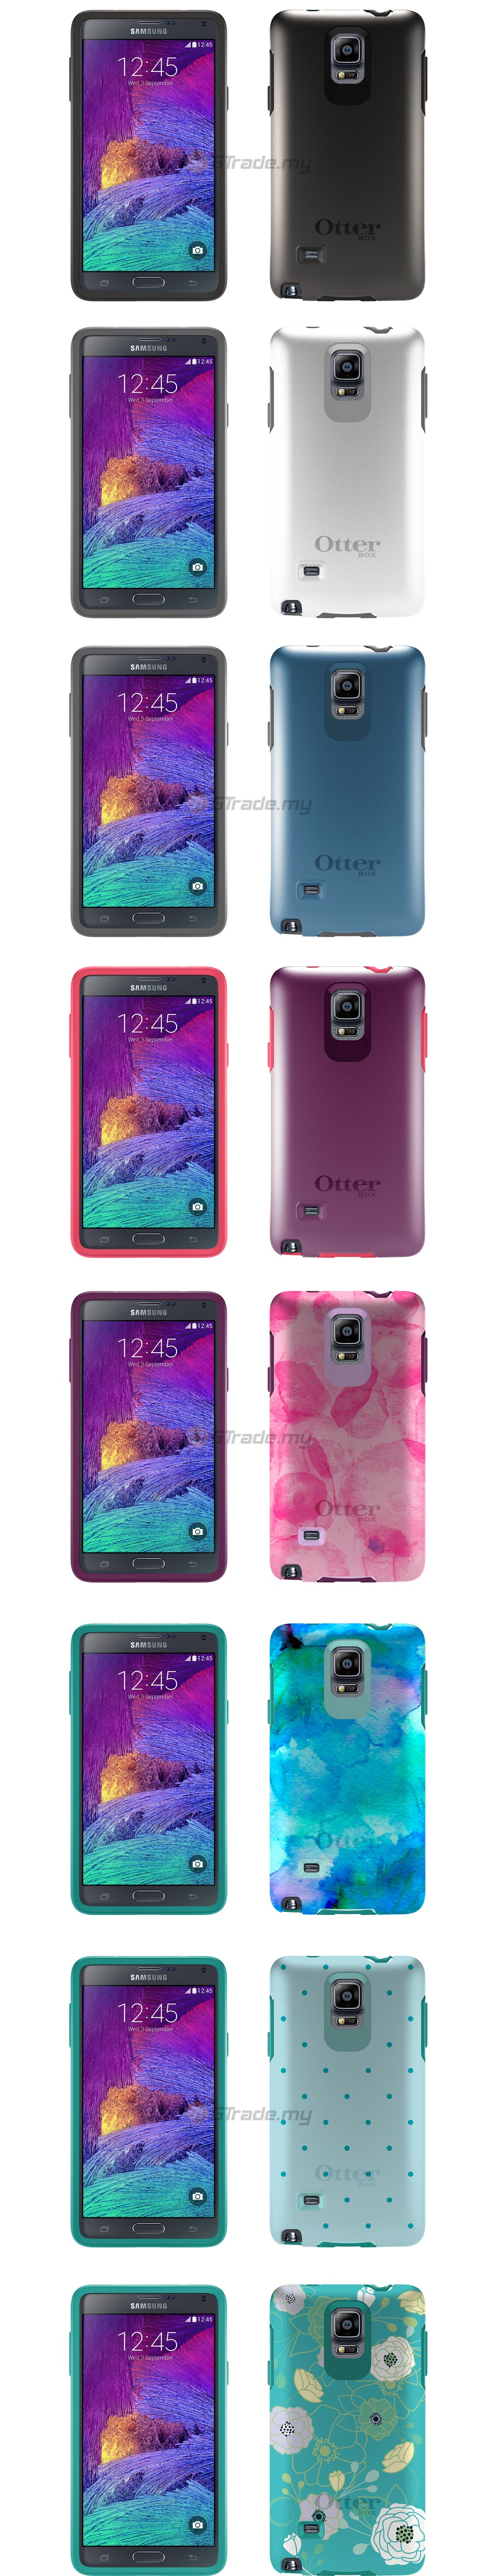 otterbox-symmetry-series-slim-stylish-shock-drop-protection-case-samsung-galaxy-note-4-p